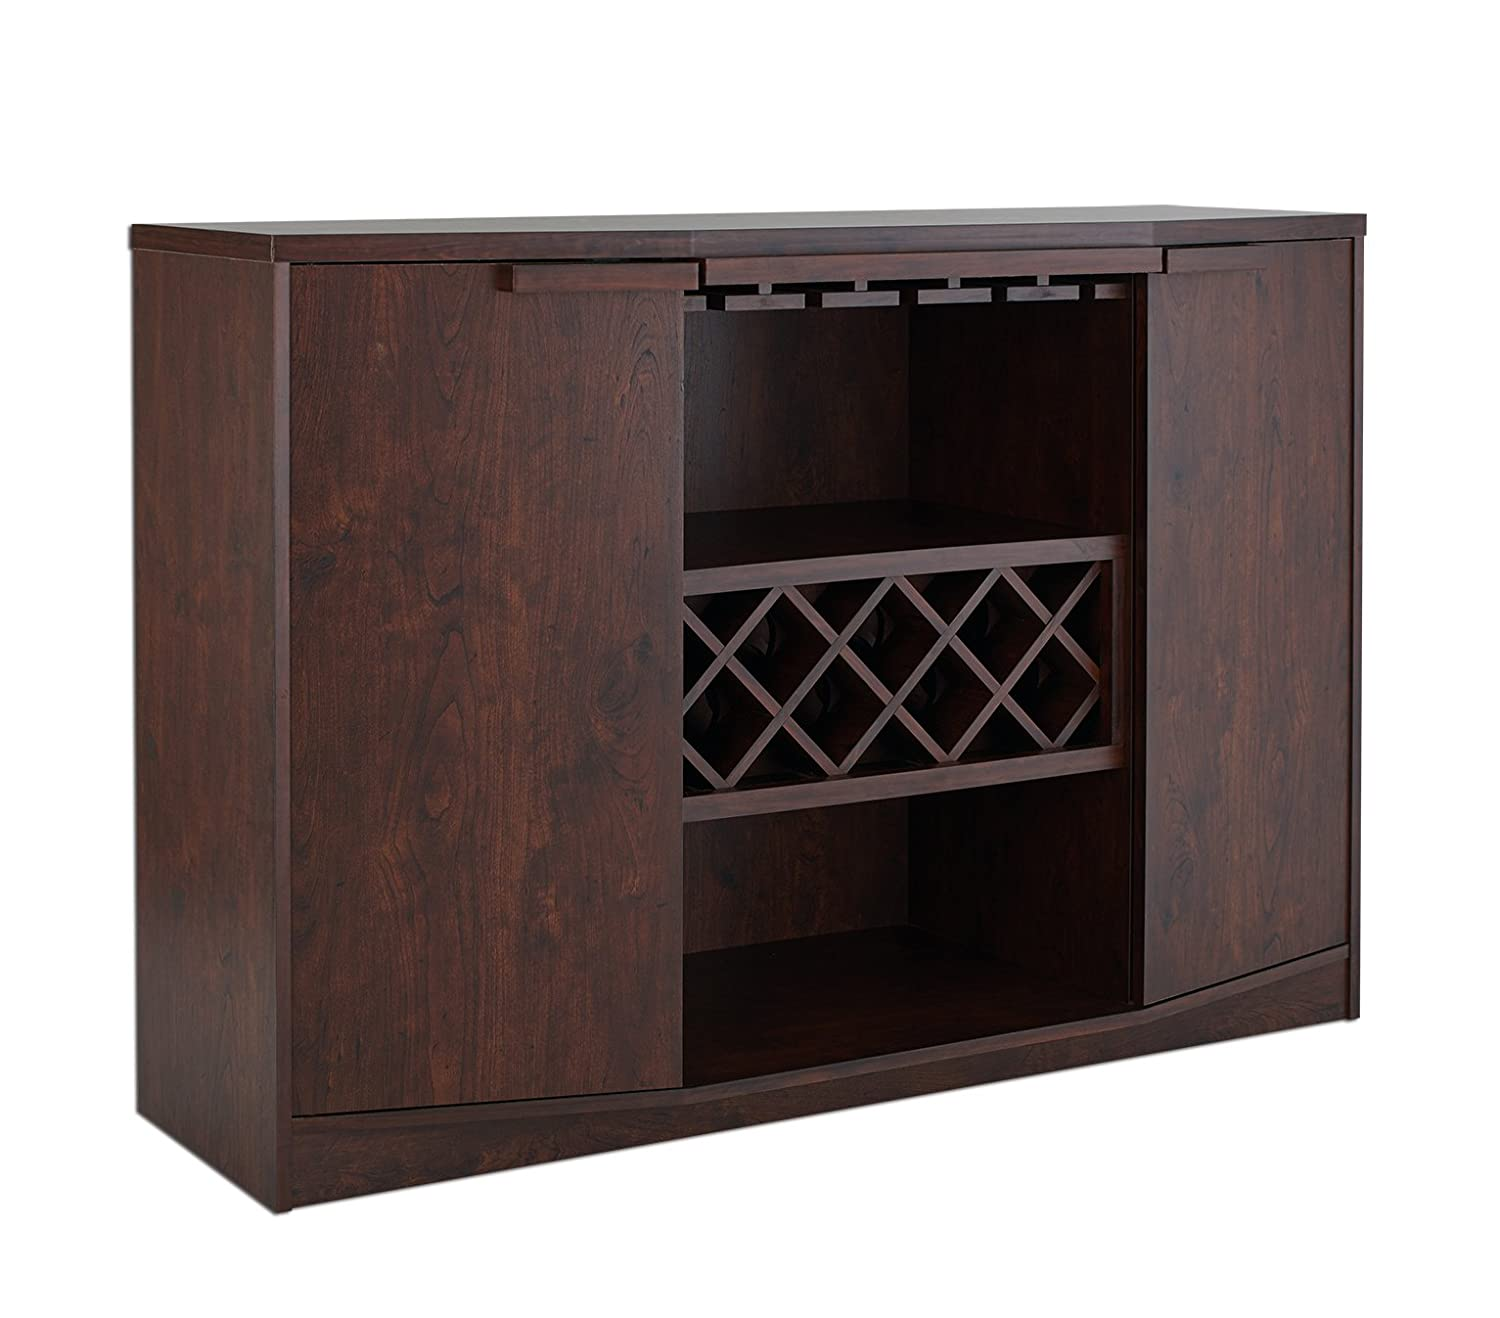 Amazon.com: ioHOMES Annadel Wine Cabinet Buffet, Vintage Walnut: Kitchen &  Dining - Amazon.com: IoHOMES Annadel Wine Cabinet Buffet, Vintage Walnut